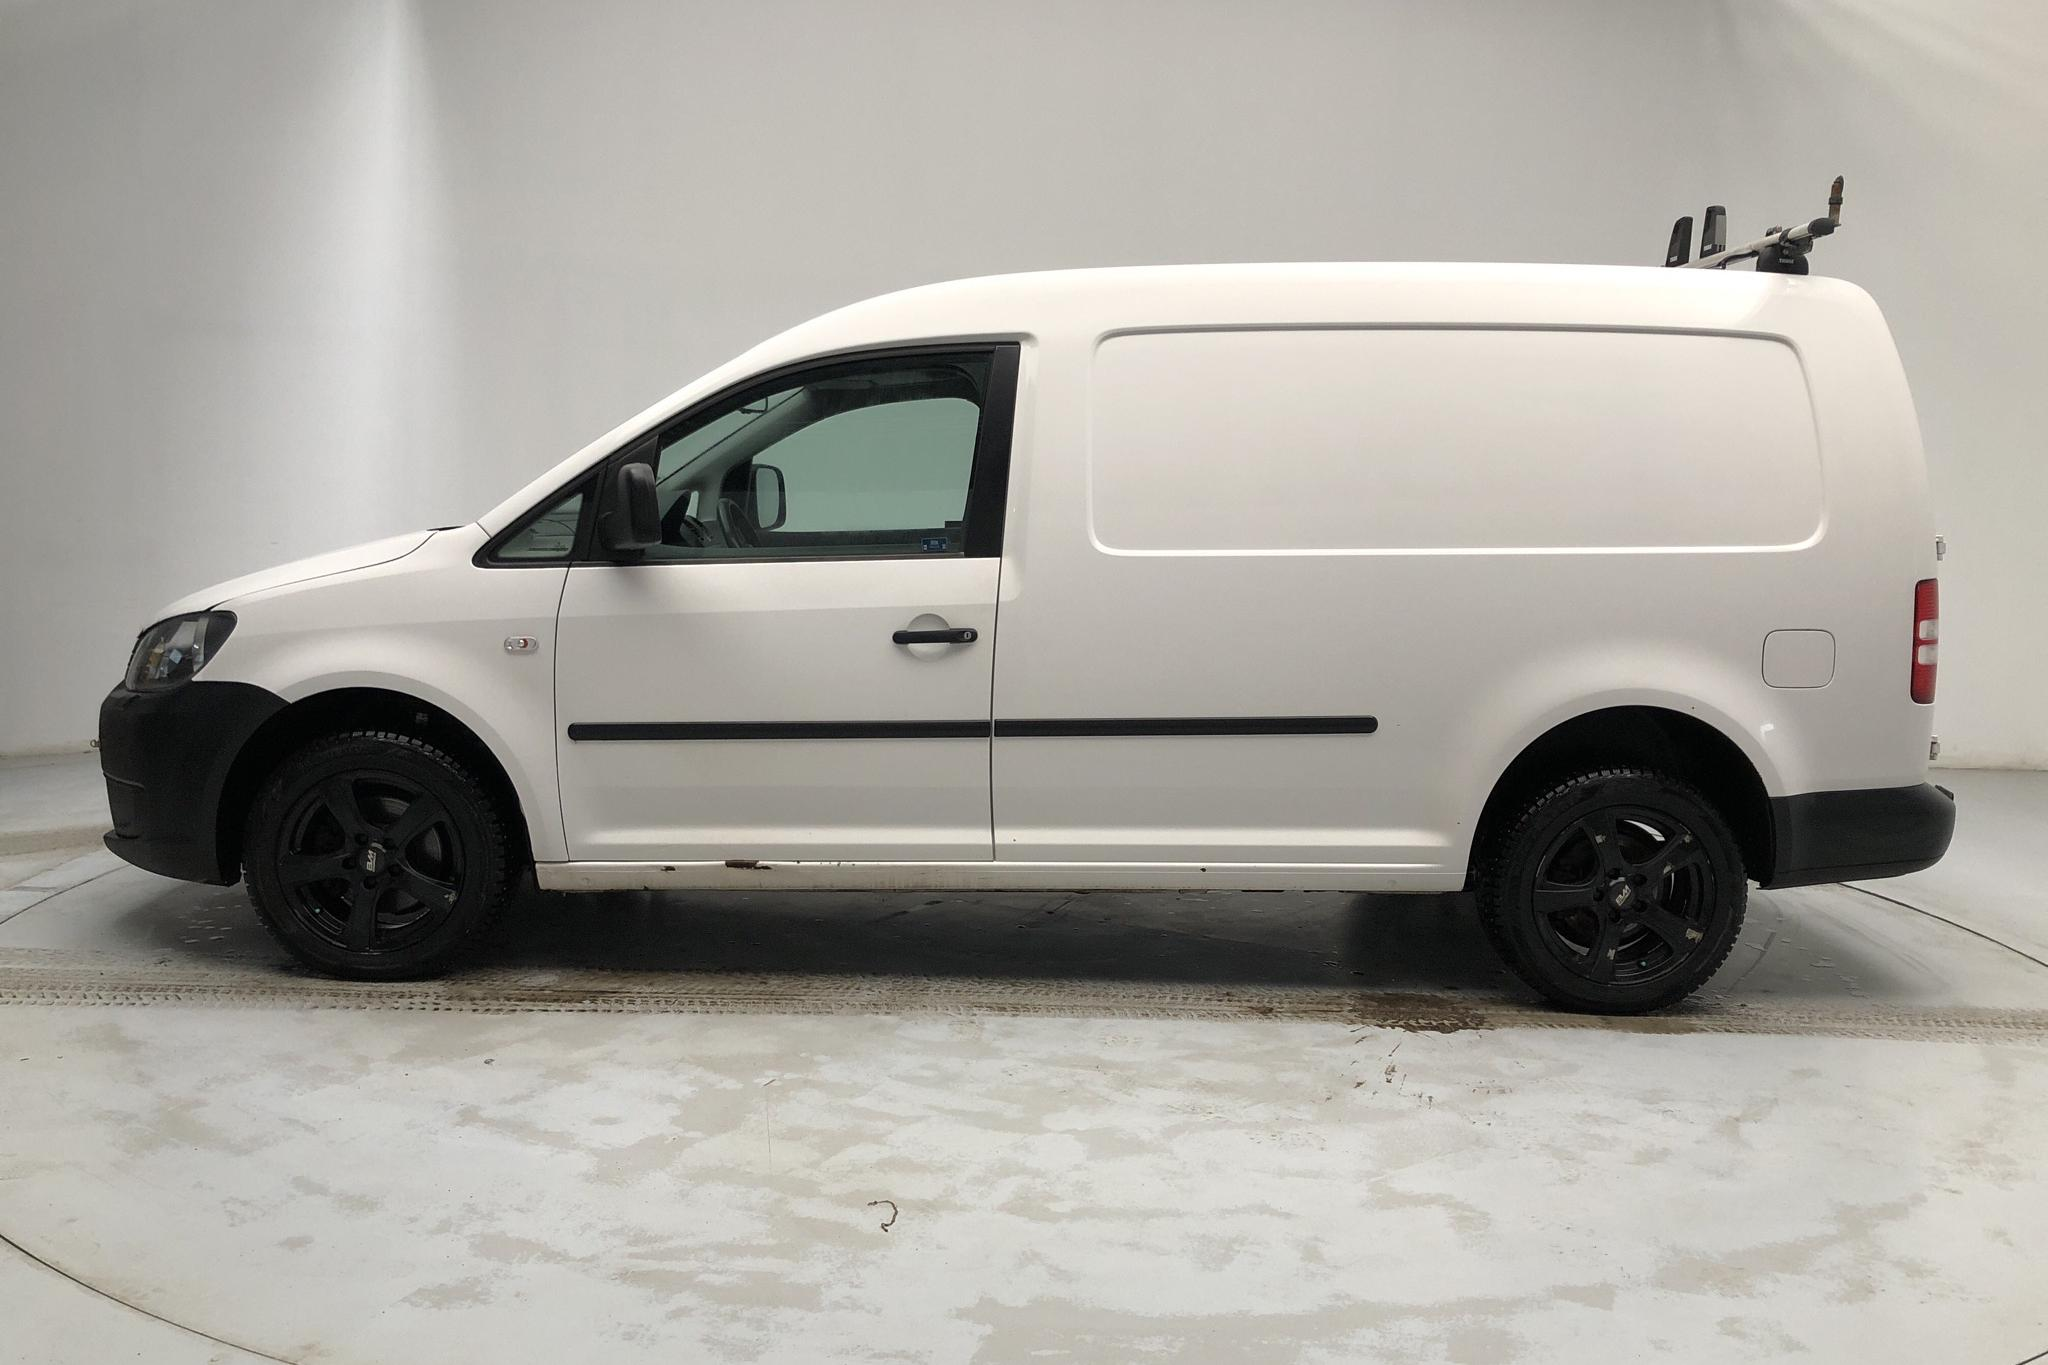 VW Caddy 2.0 TDI Maxi Skåp 4-motion (110hk) - 210 800 km - Manual - white - 2013